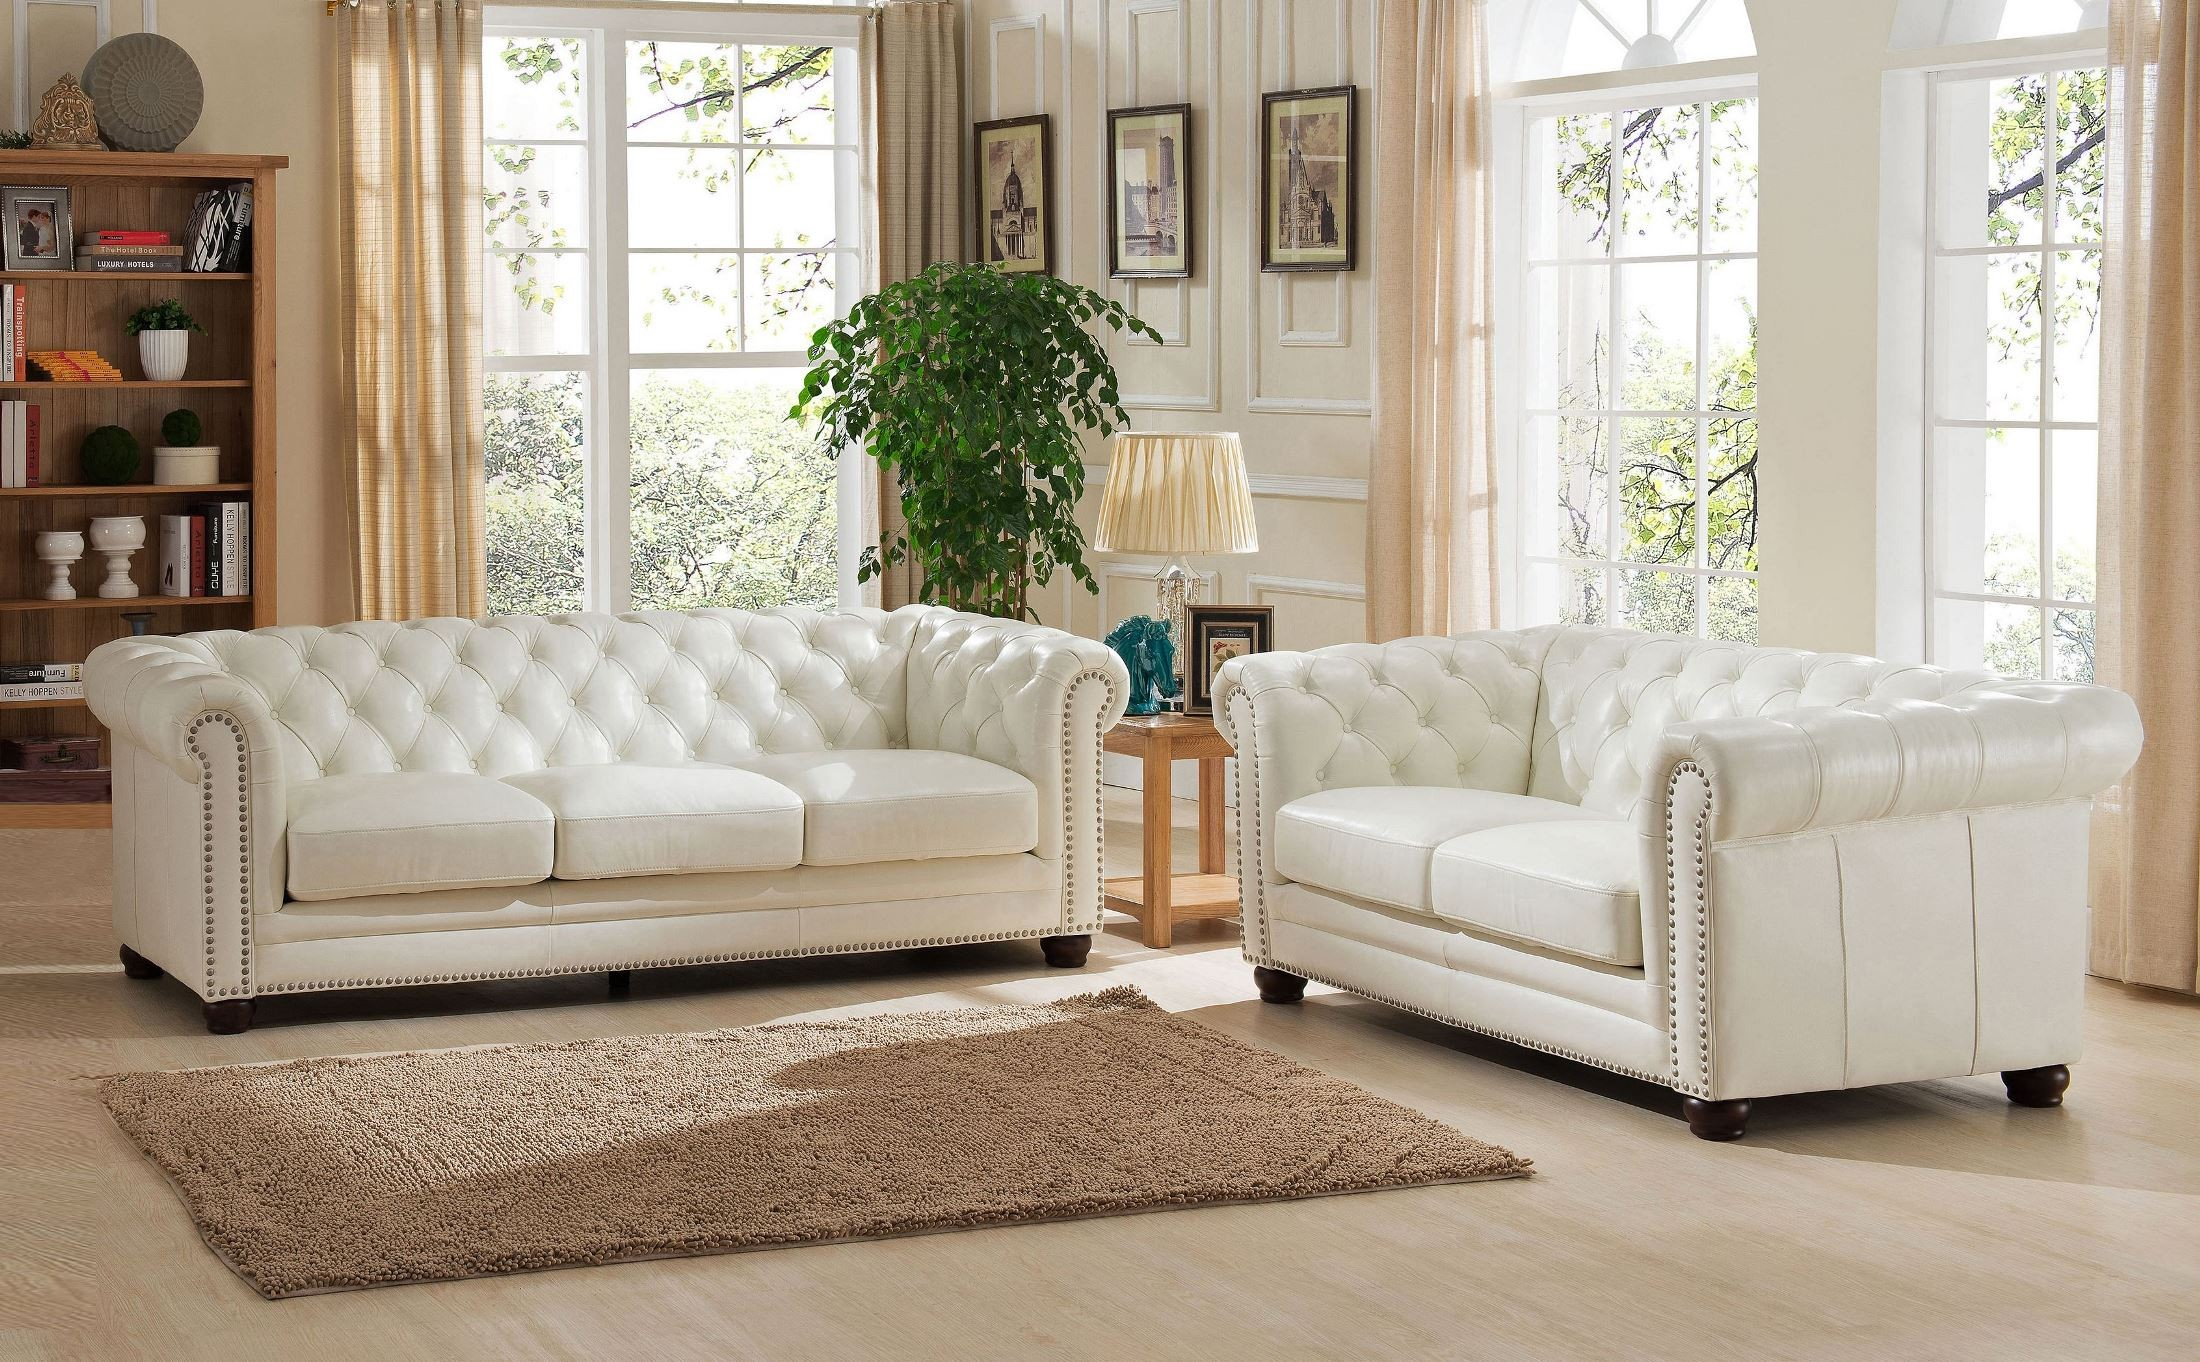 white furniture in living room monaco pearl white leather living room set from amax 23619